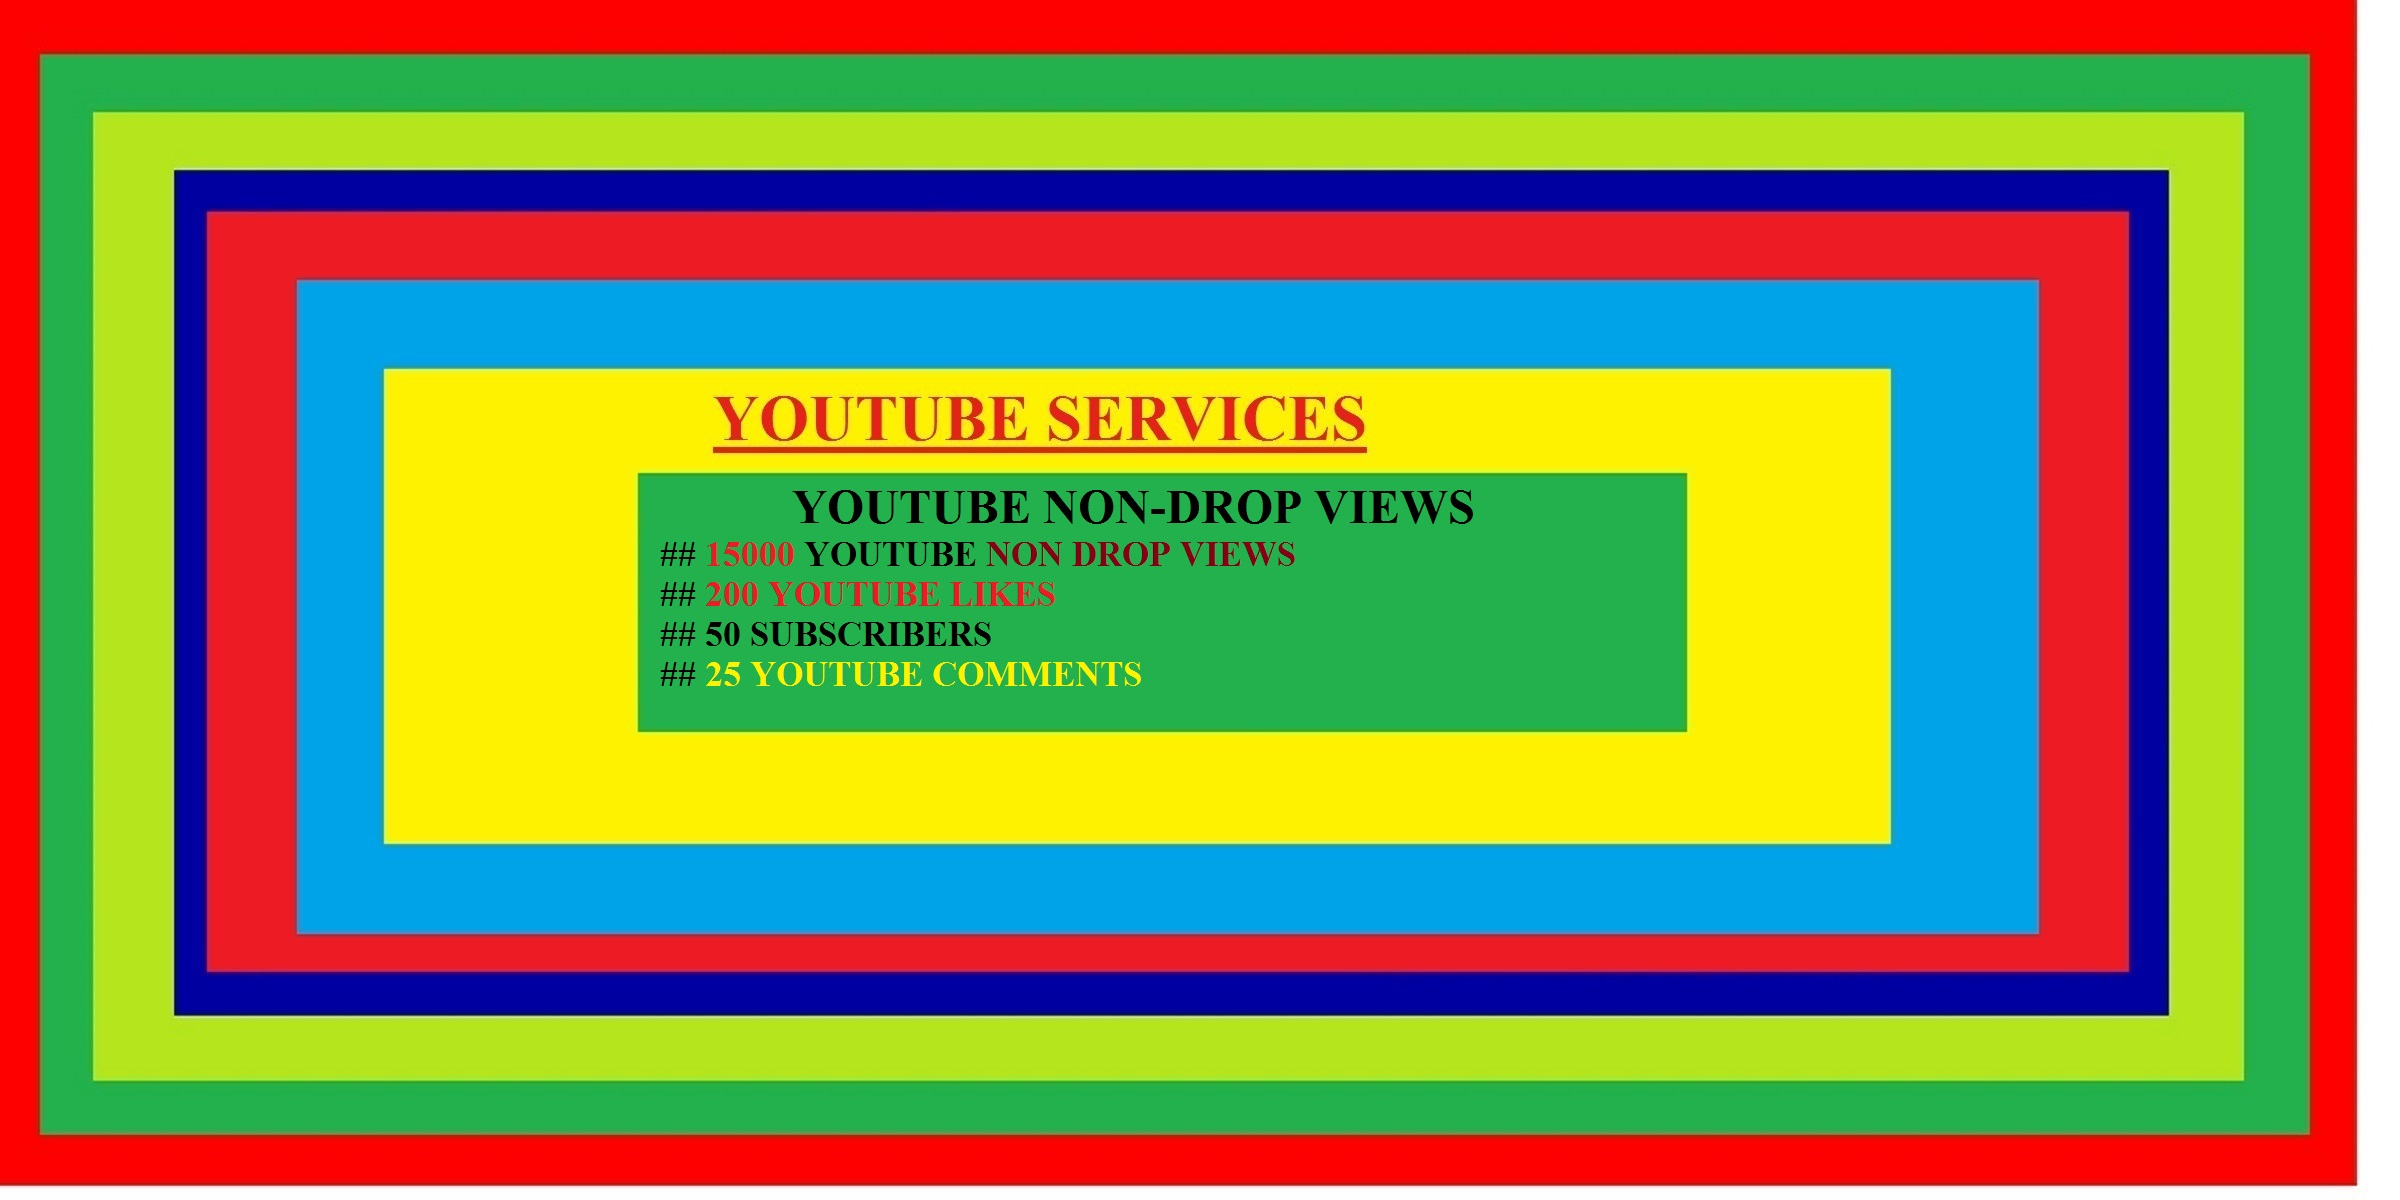 GET 20000 YOUTUBE VIEWS + 1000 YOUTUBE LIKES + 50 SUBSCRIBERS + 25 youtube comments